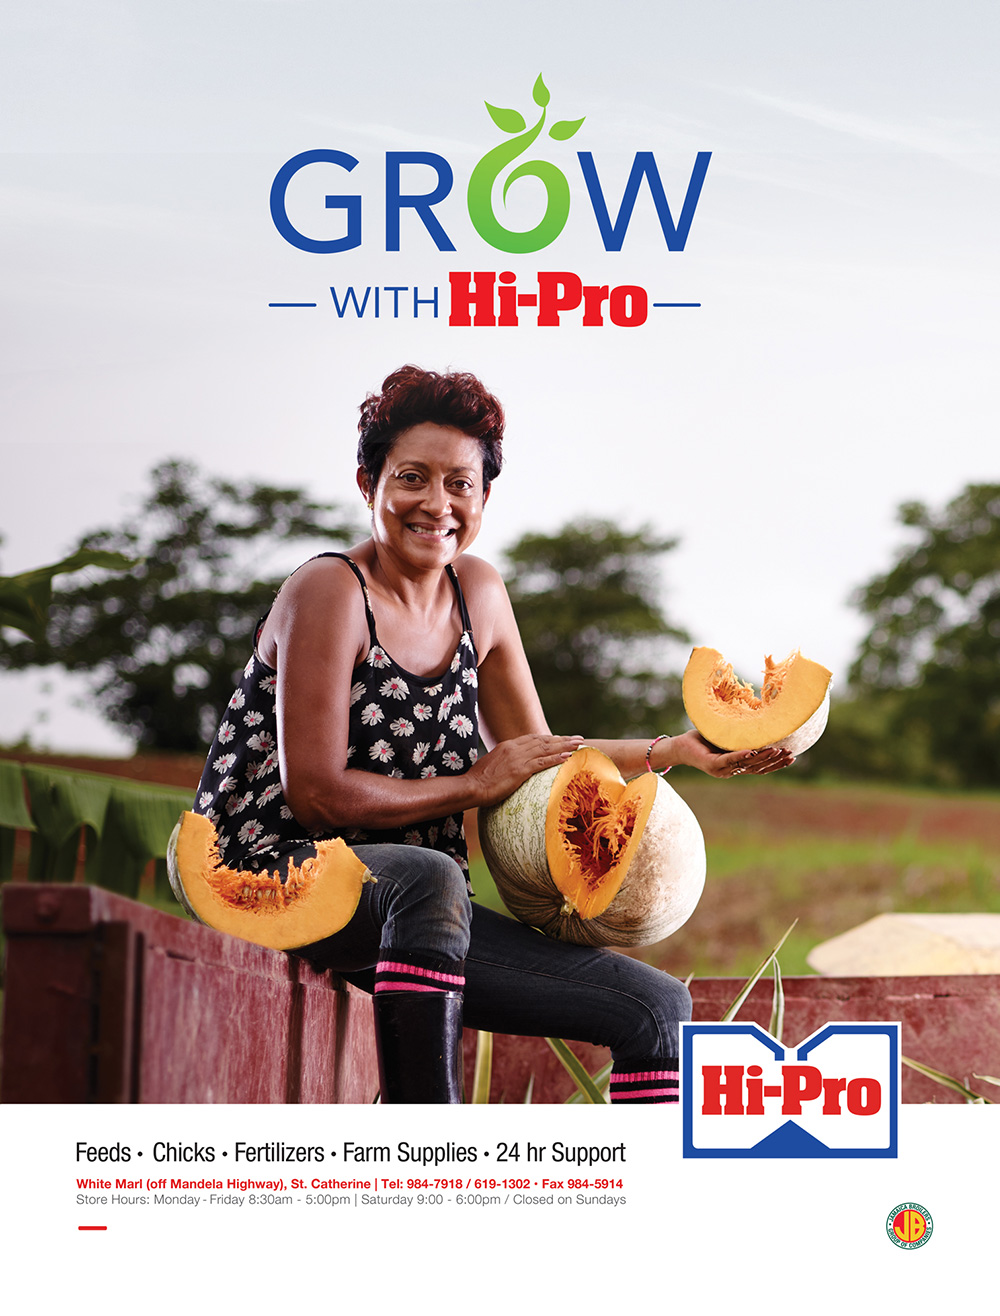 Case-Studies-HiPro_Grow_Broilers5